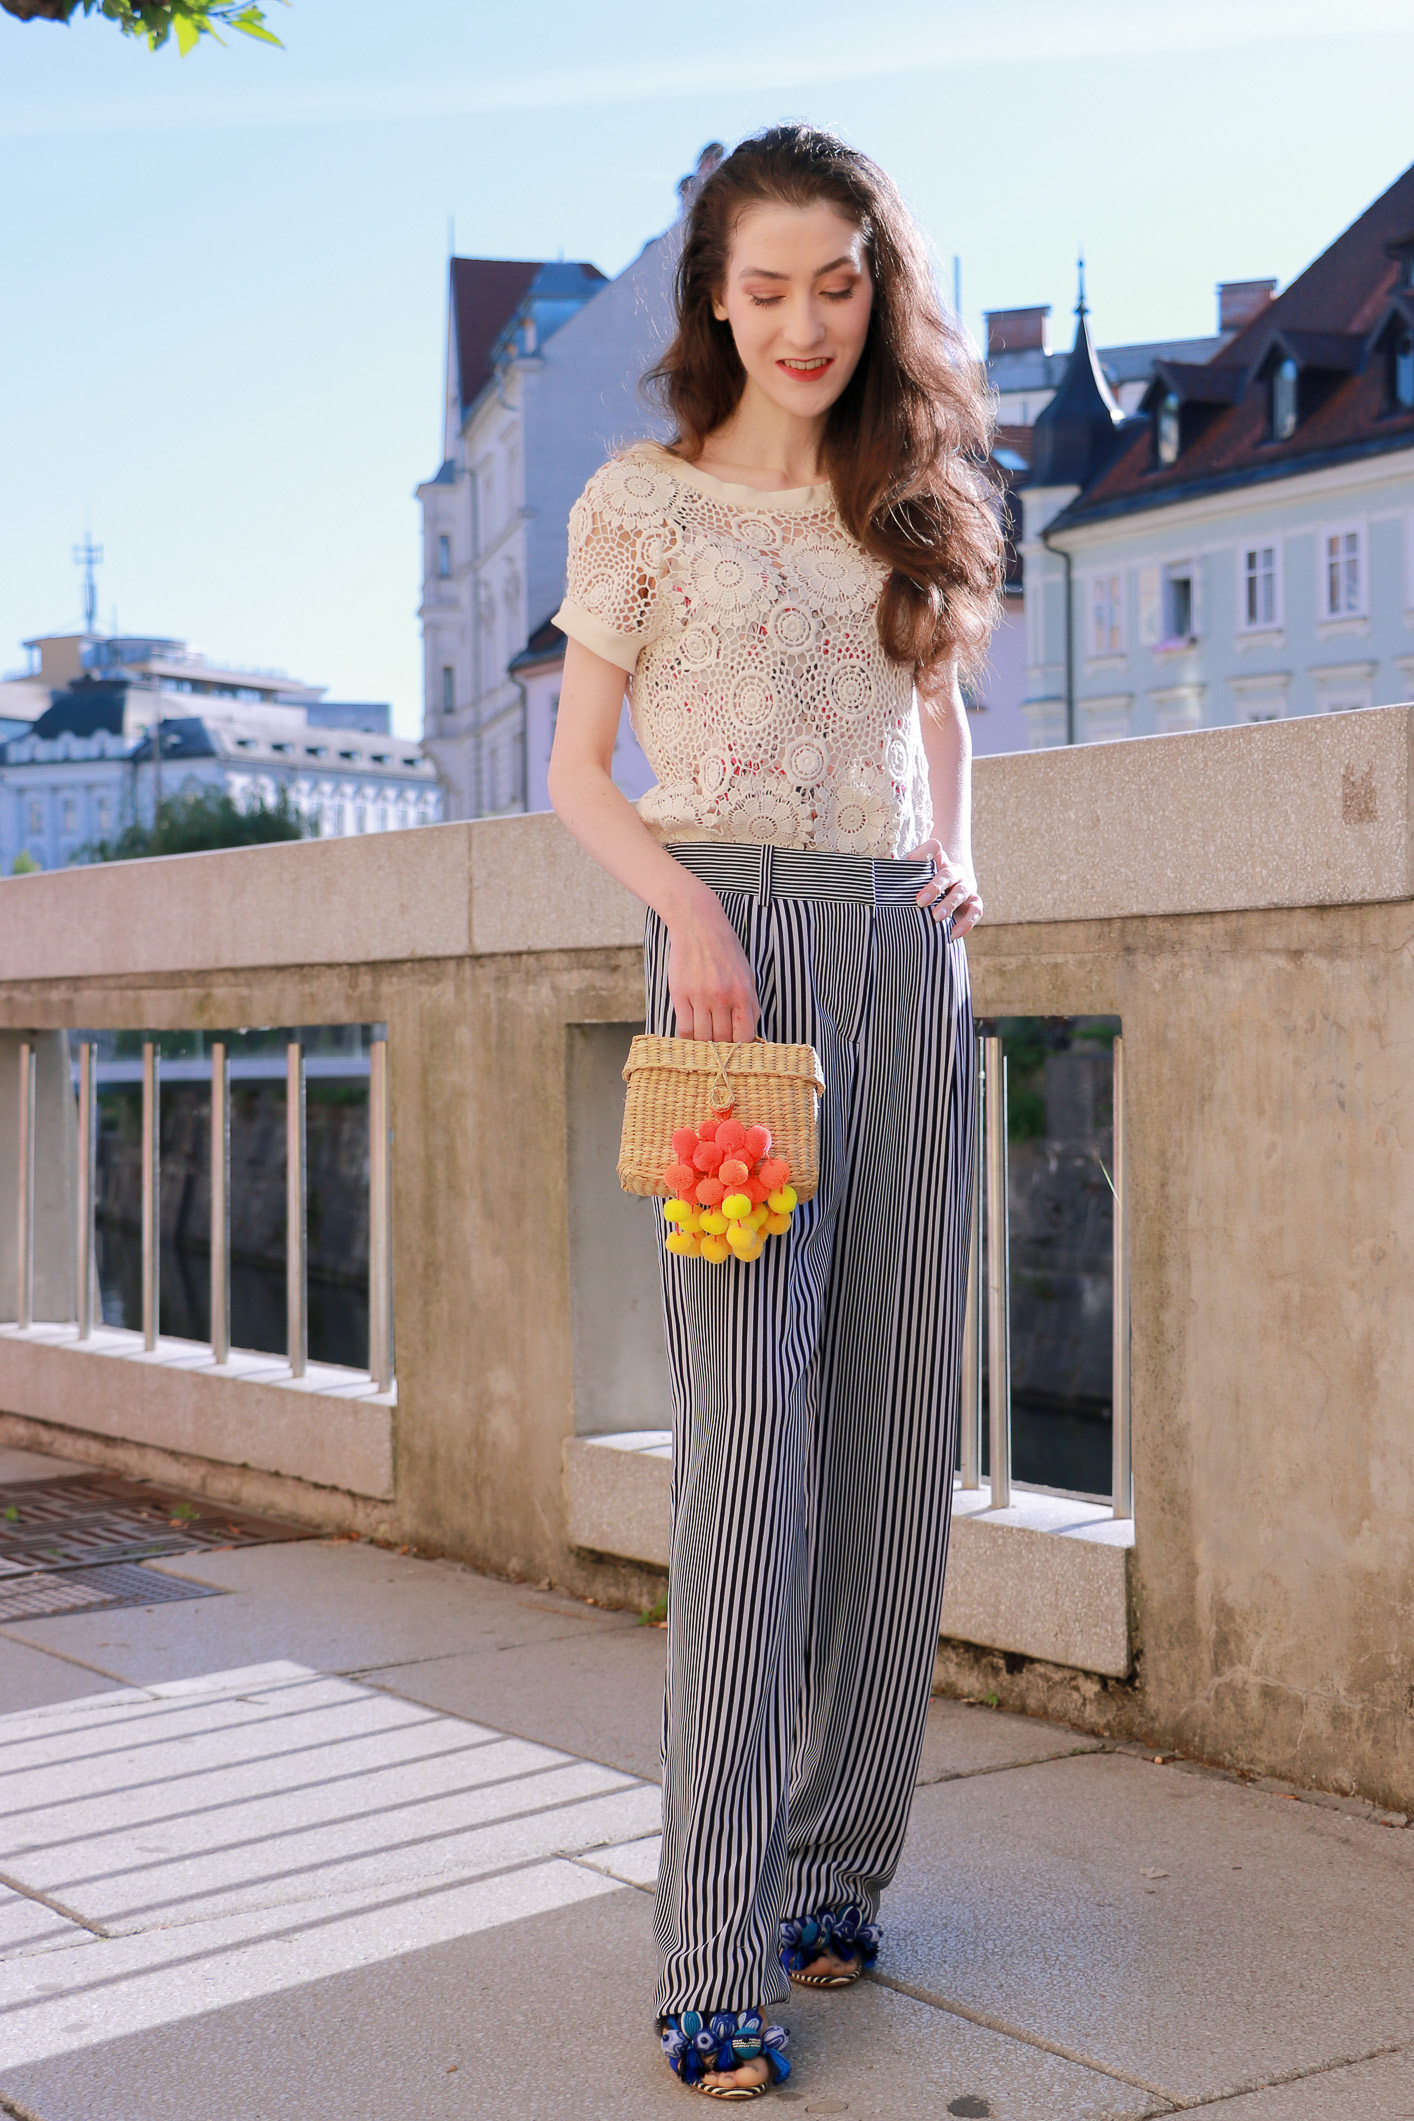 Fashion blogger Veronika Lipar of Brunette From Wall Street sharing how to wear raffia basket bag on the streets